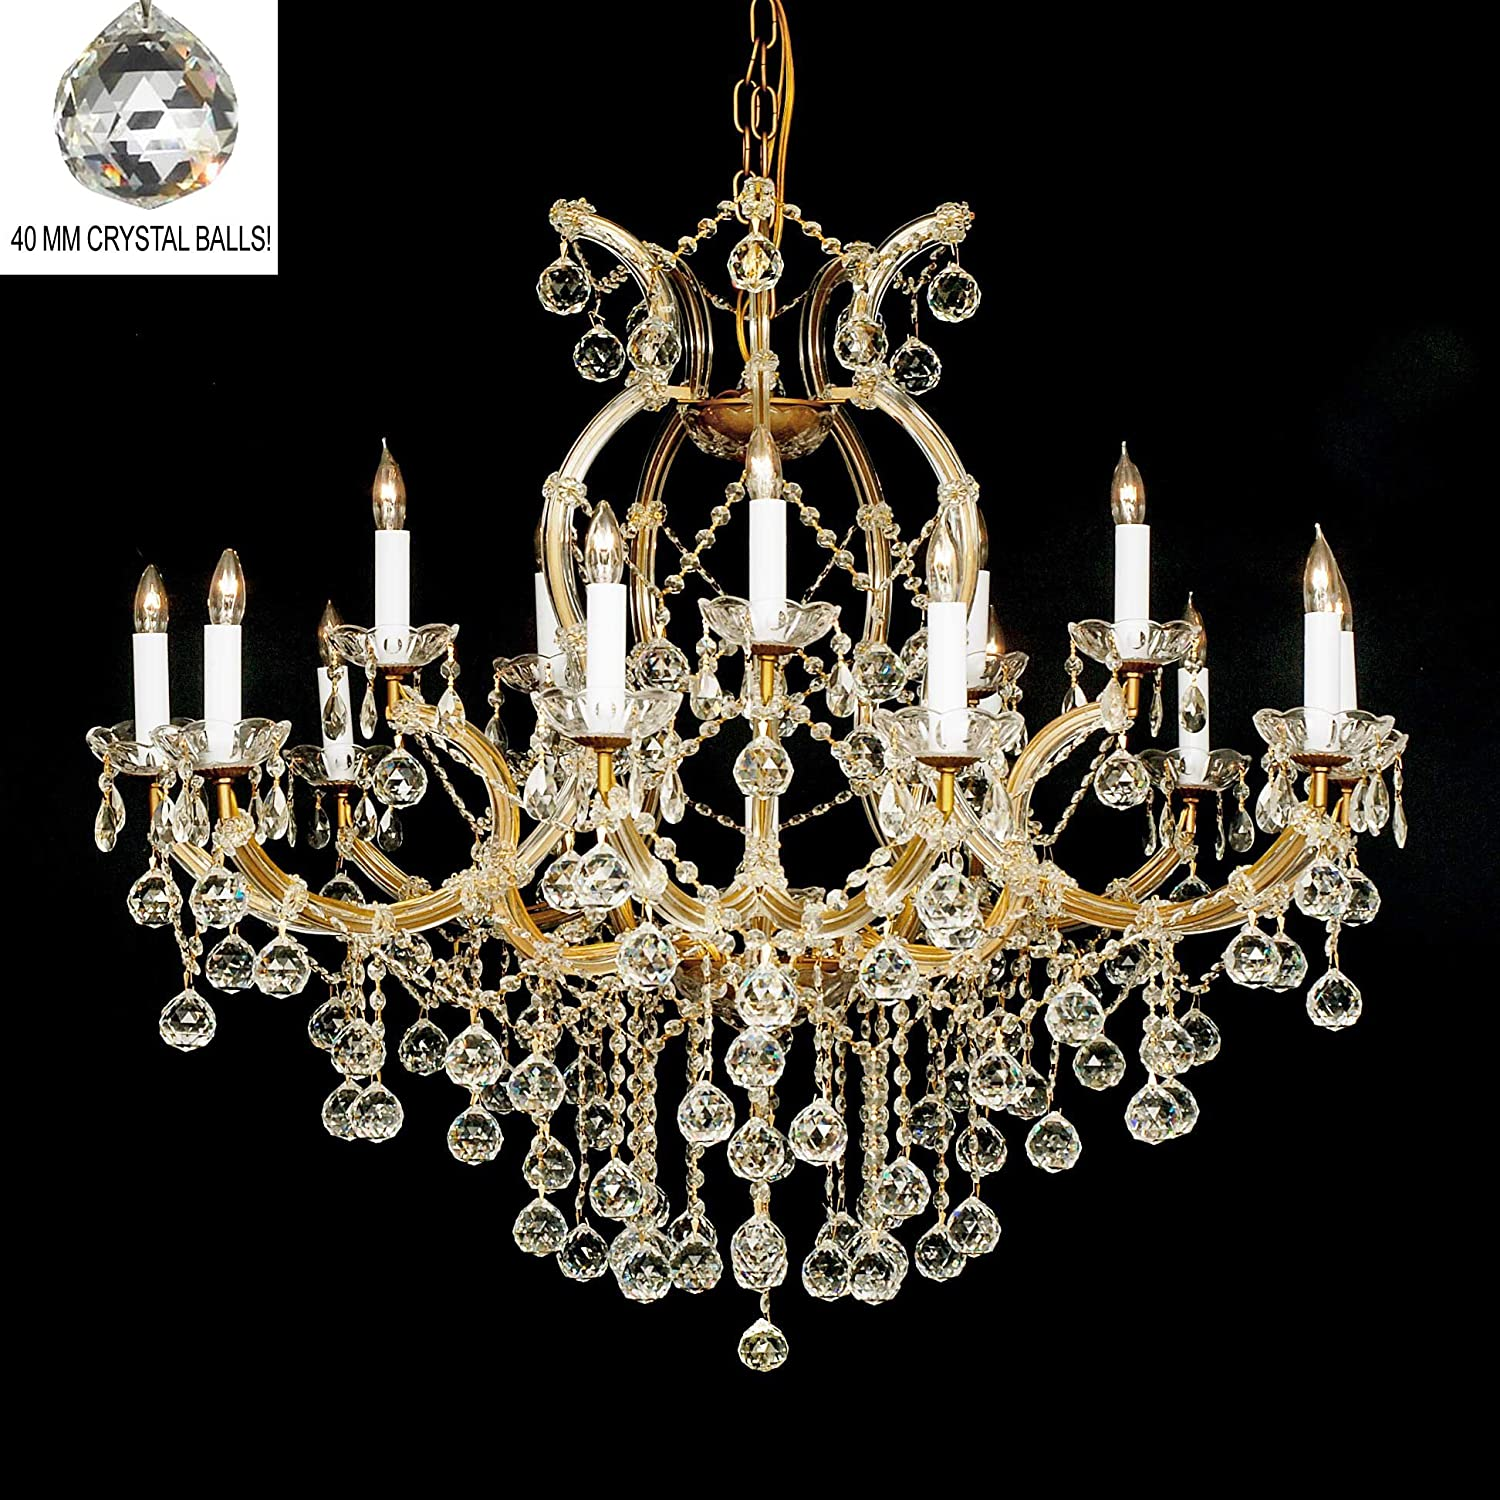 Swarovski Crystal Dollhouse Chandelier: Swarovski Crystal Trimmed Chandelier! New! Crystal